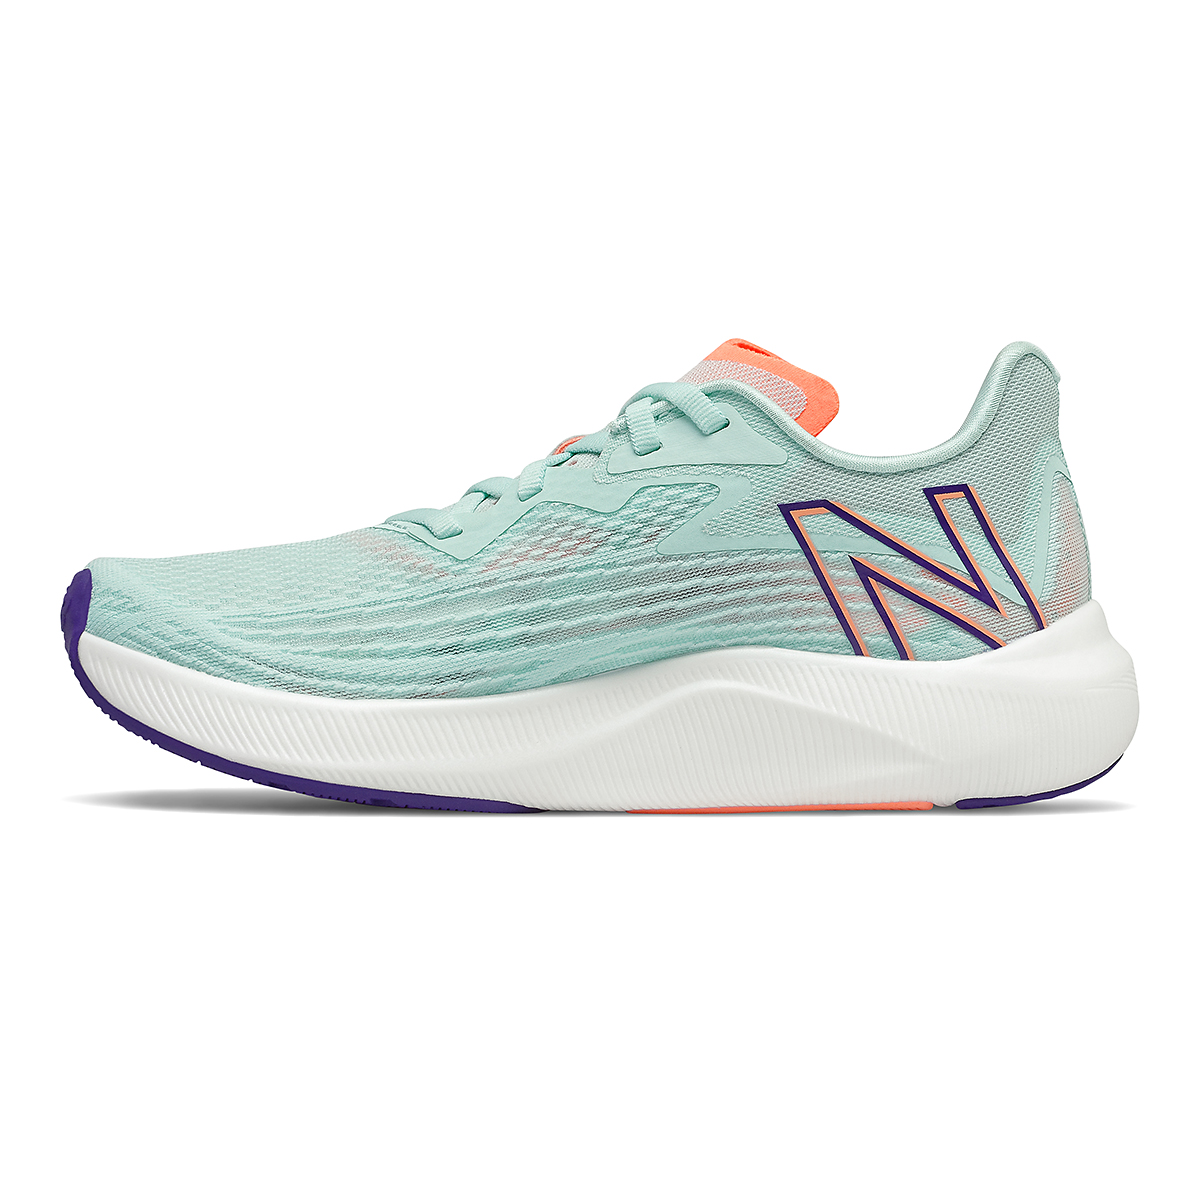 Women's New Balance Fuelcell Rebel V2 Running Shoe - Color: White Mint/Citrus Punch - Size: 7 - Width: Regular, White Mint/Citrus Punch, large, image 2